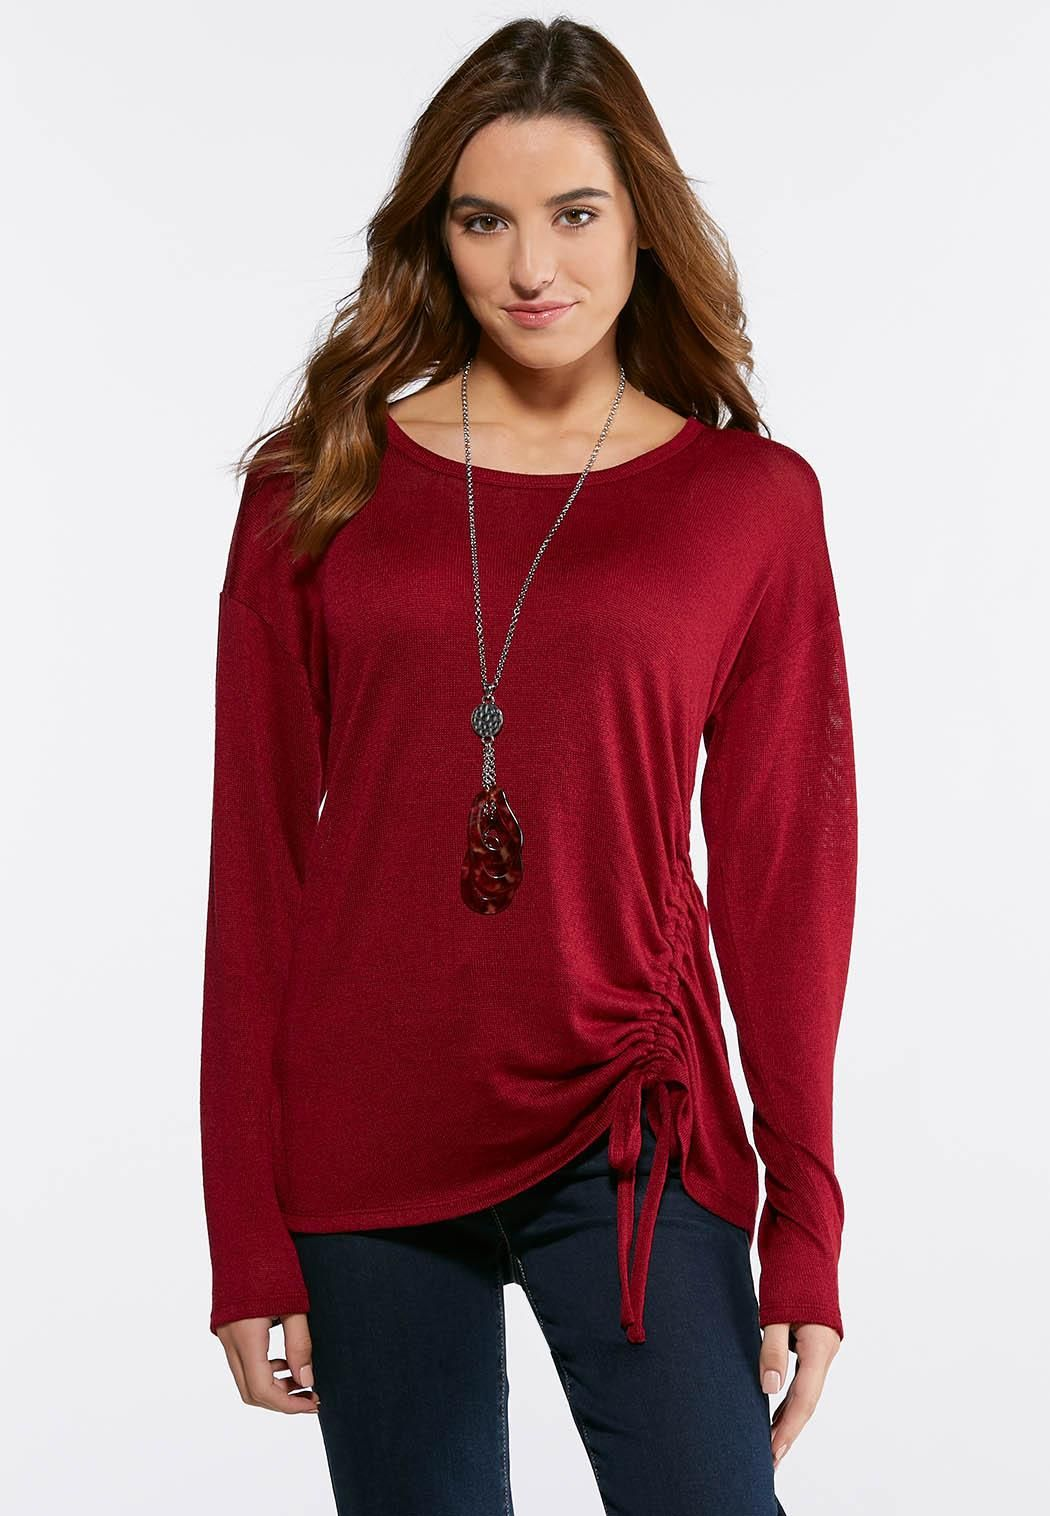 fb26d7901e3dd0 Plus Size Front Cinch Hacci Top Tees & Knit Tops Cato Fashions ...